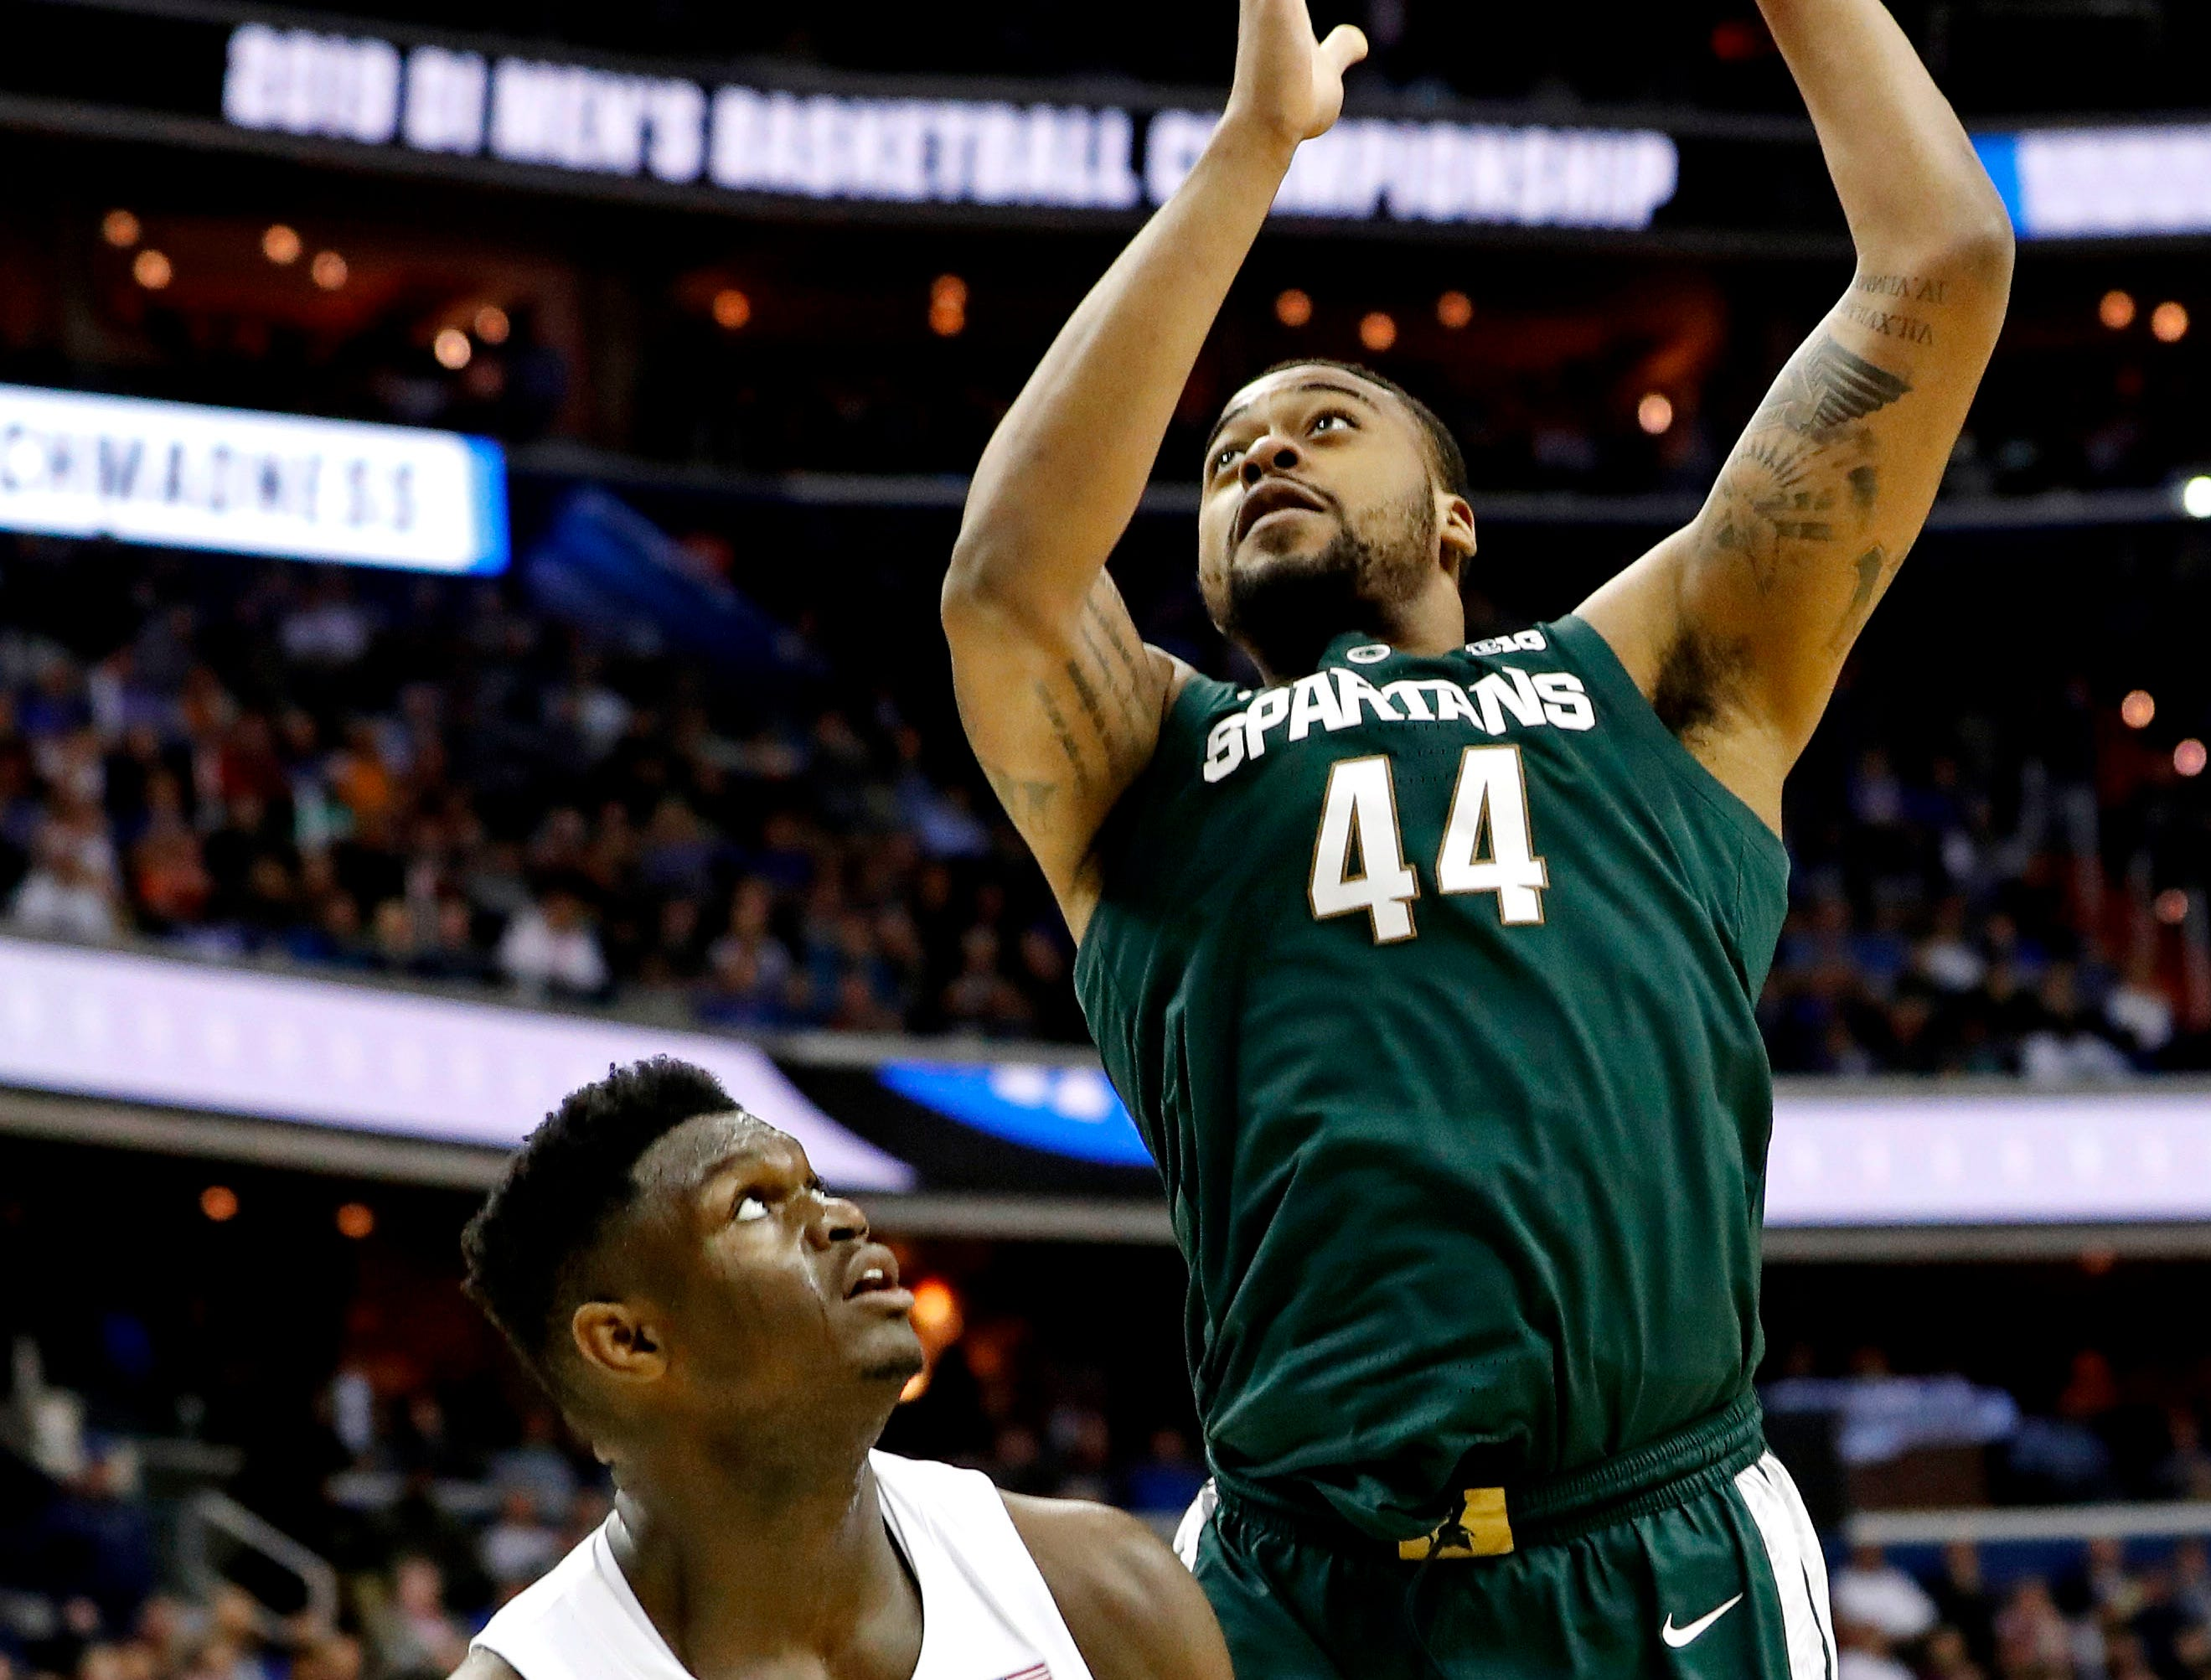 Mar 31, 2019; Washington, DC, USA; Michigan State Spartans forward Nick Ward (44) shoots the ball against Duke Blue Devils forward Zion Williamson (1) during the second half in the championship game of the east regional of the 2019 NCAA Tournament at Capital One Arena. Mandatory Credit: Geoff Burke-USA TODAY Sports